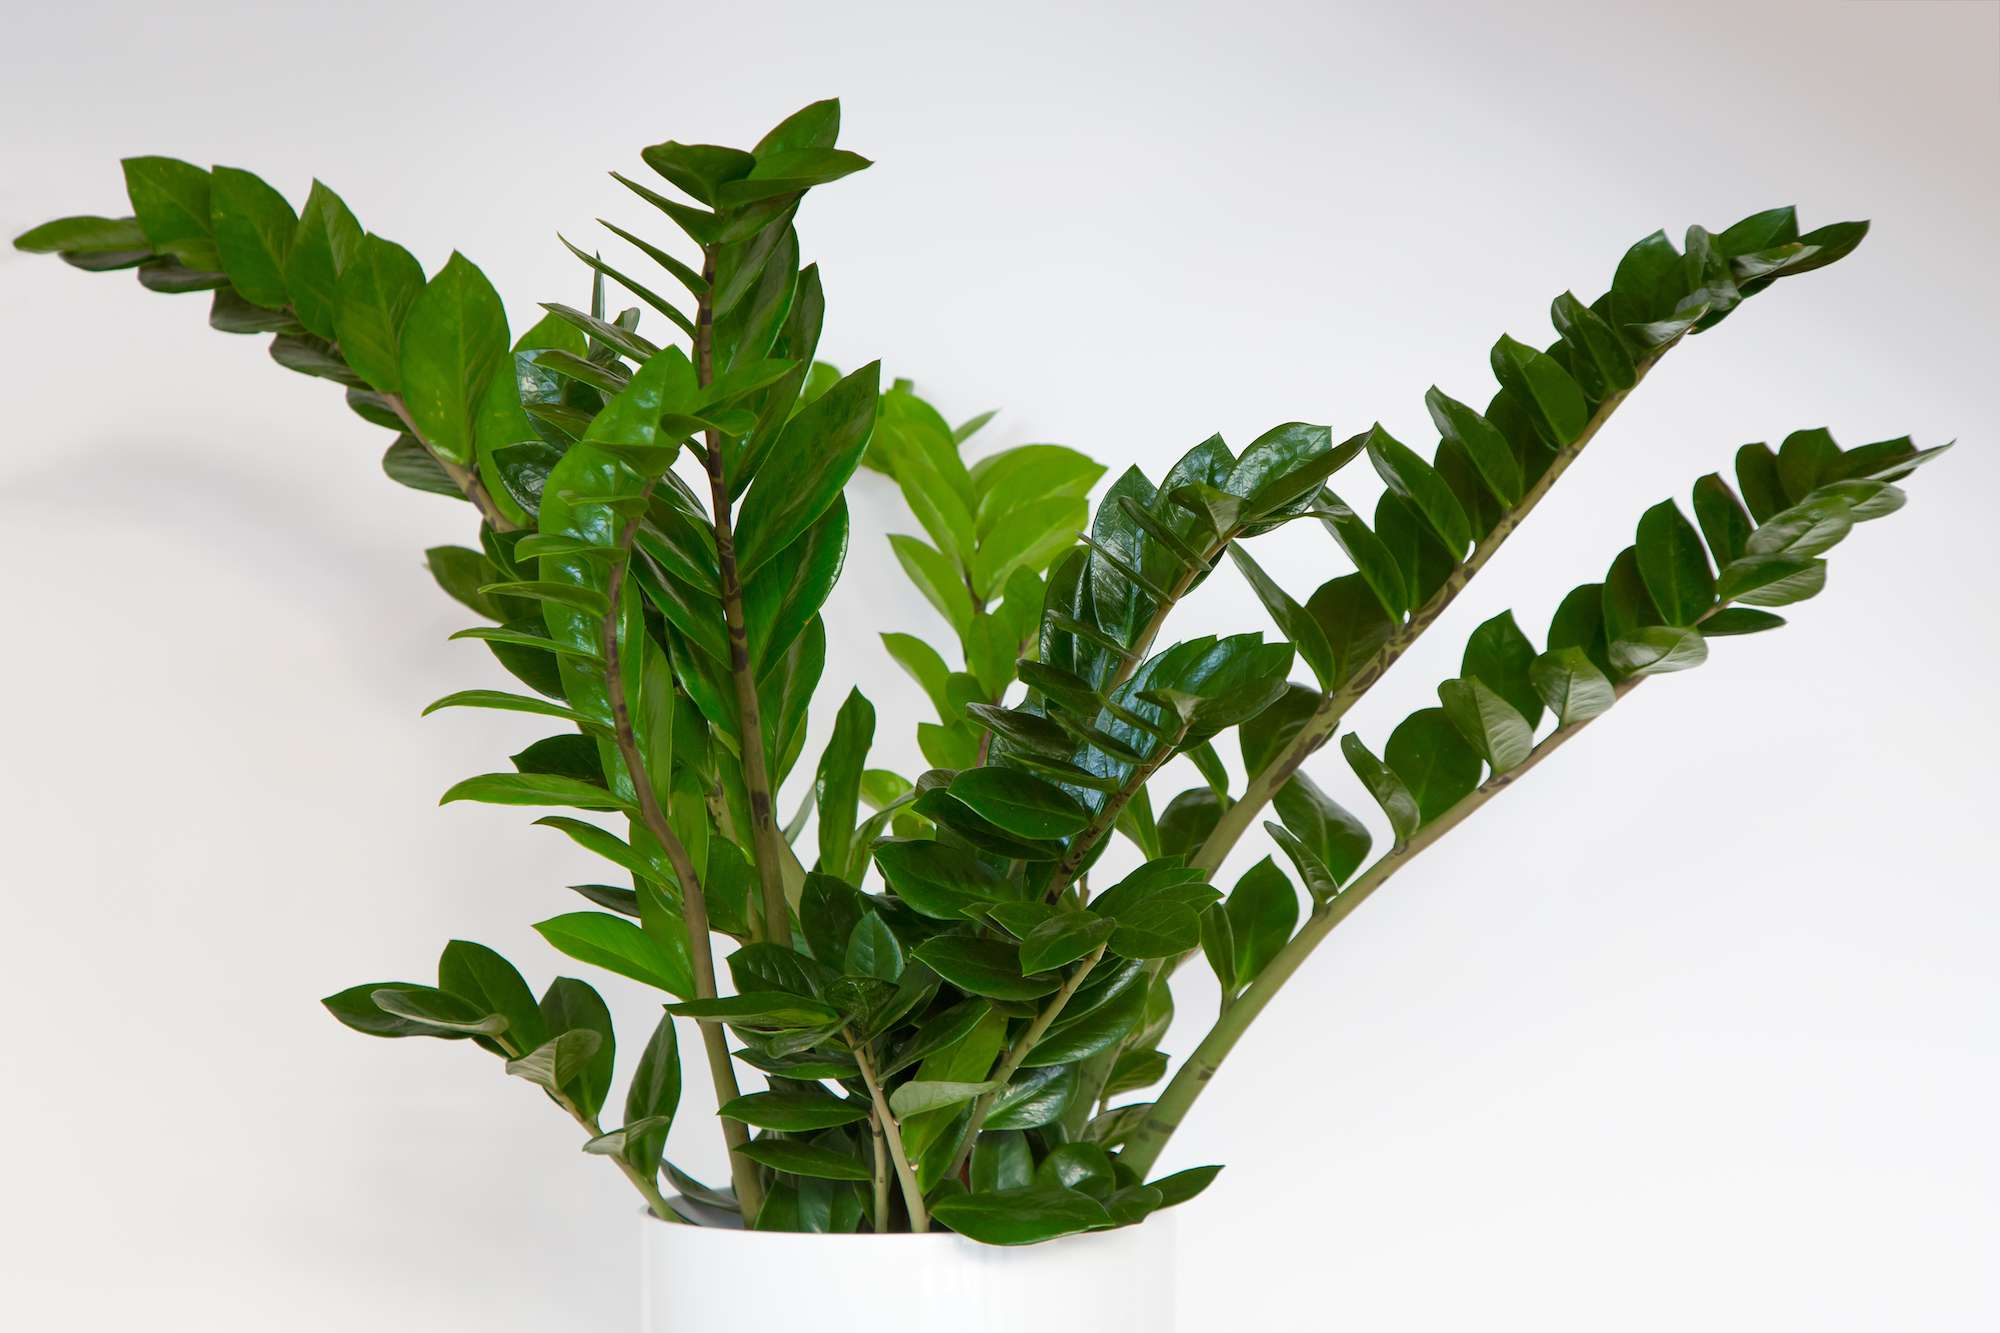 8 Of The Easiest Houseplants To Care For